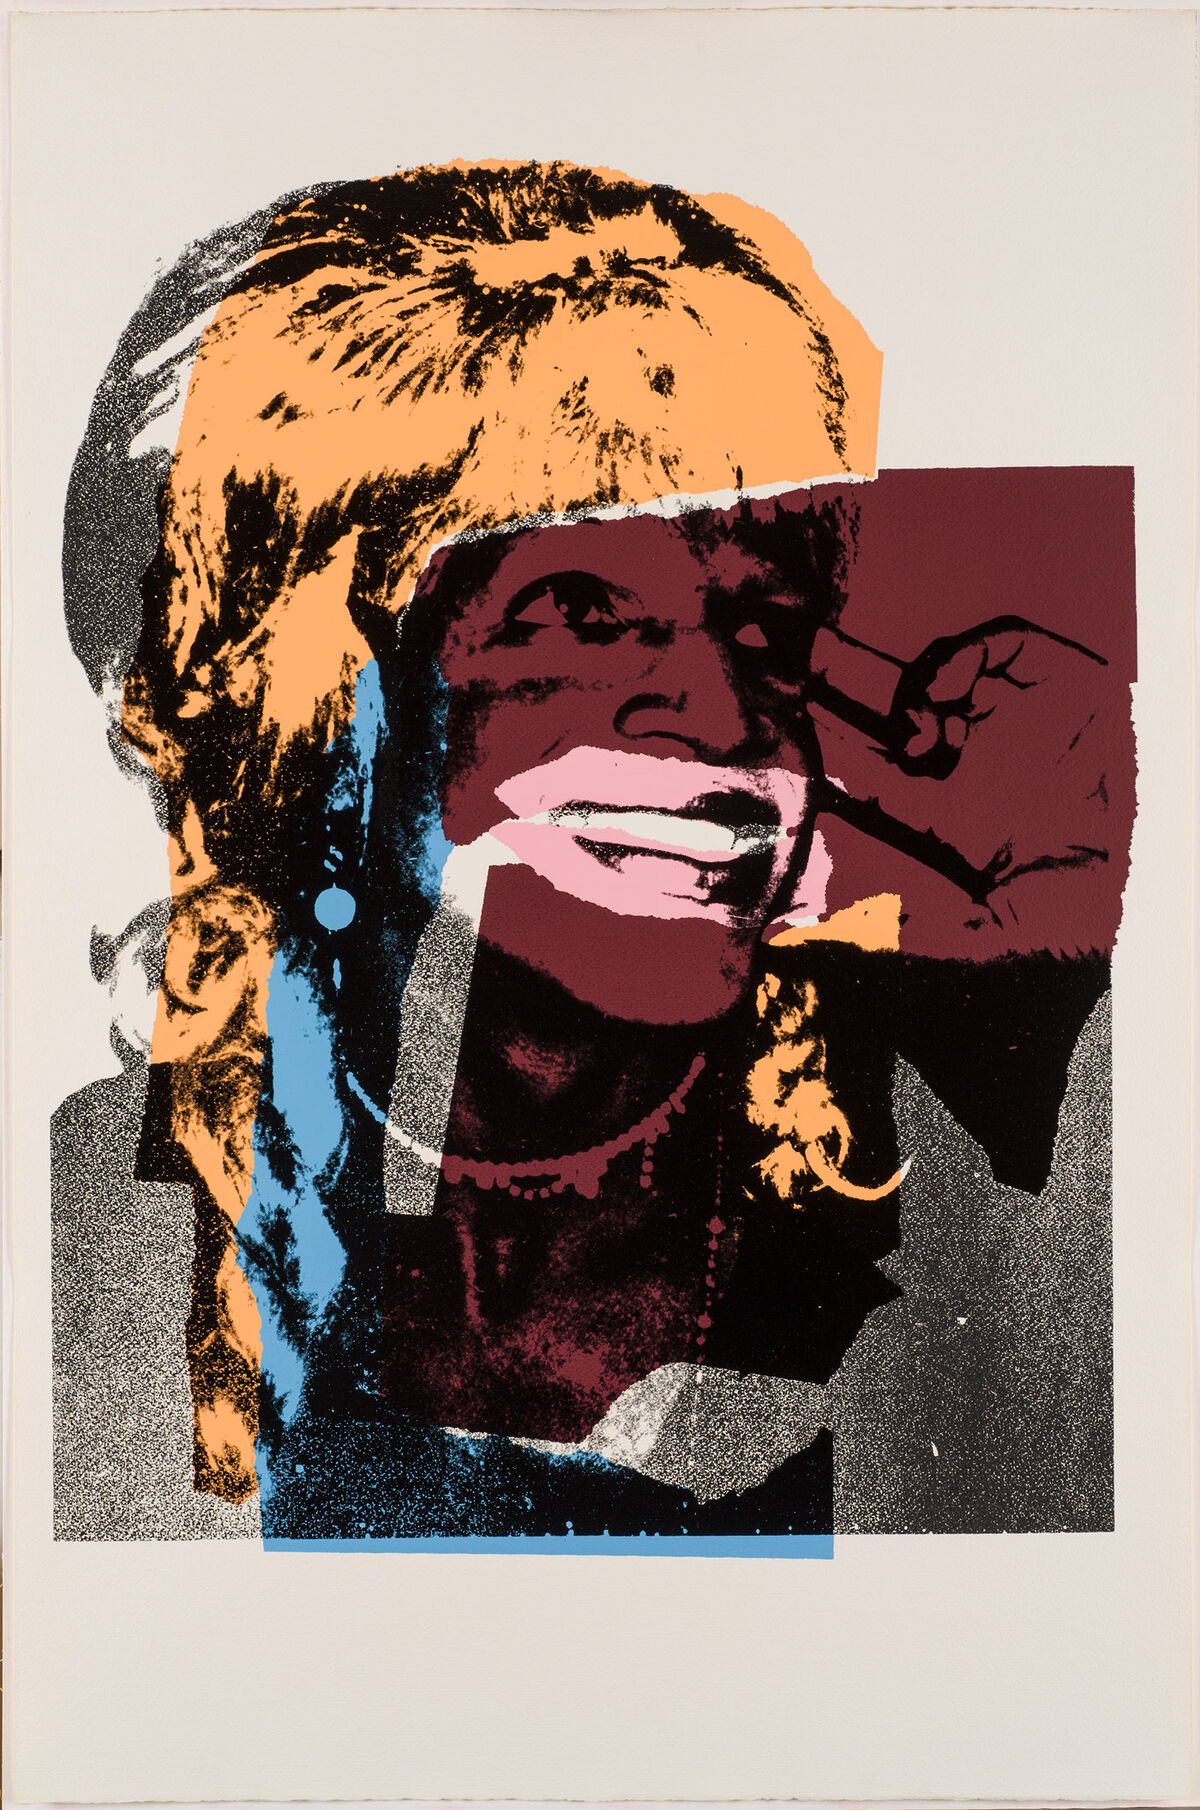 Andy Warhol, Ladies and Gentlemen, 1975. © 2018 The Andy Warhol Foundation for the Visual Arts, Inc. / Licensed by Artists Rights Society (ARS), New York.